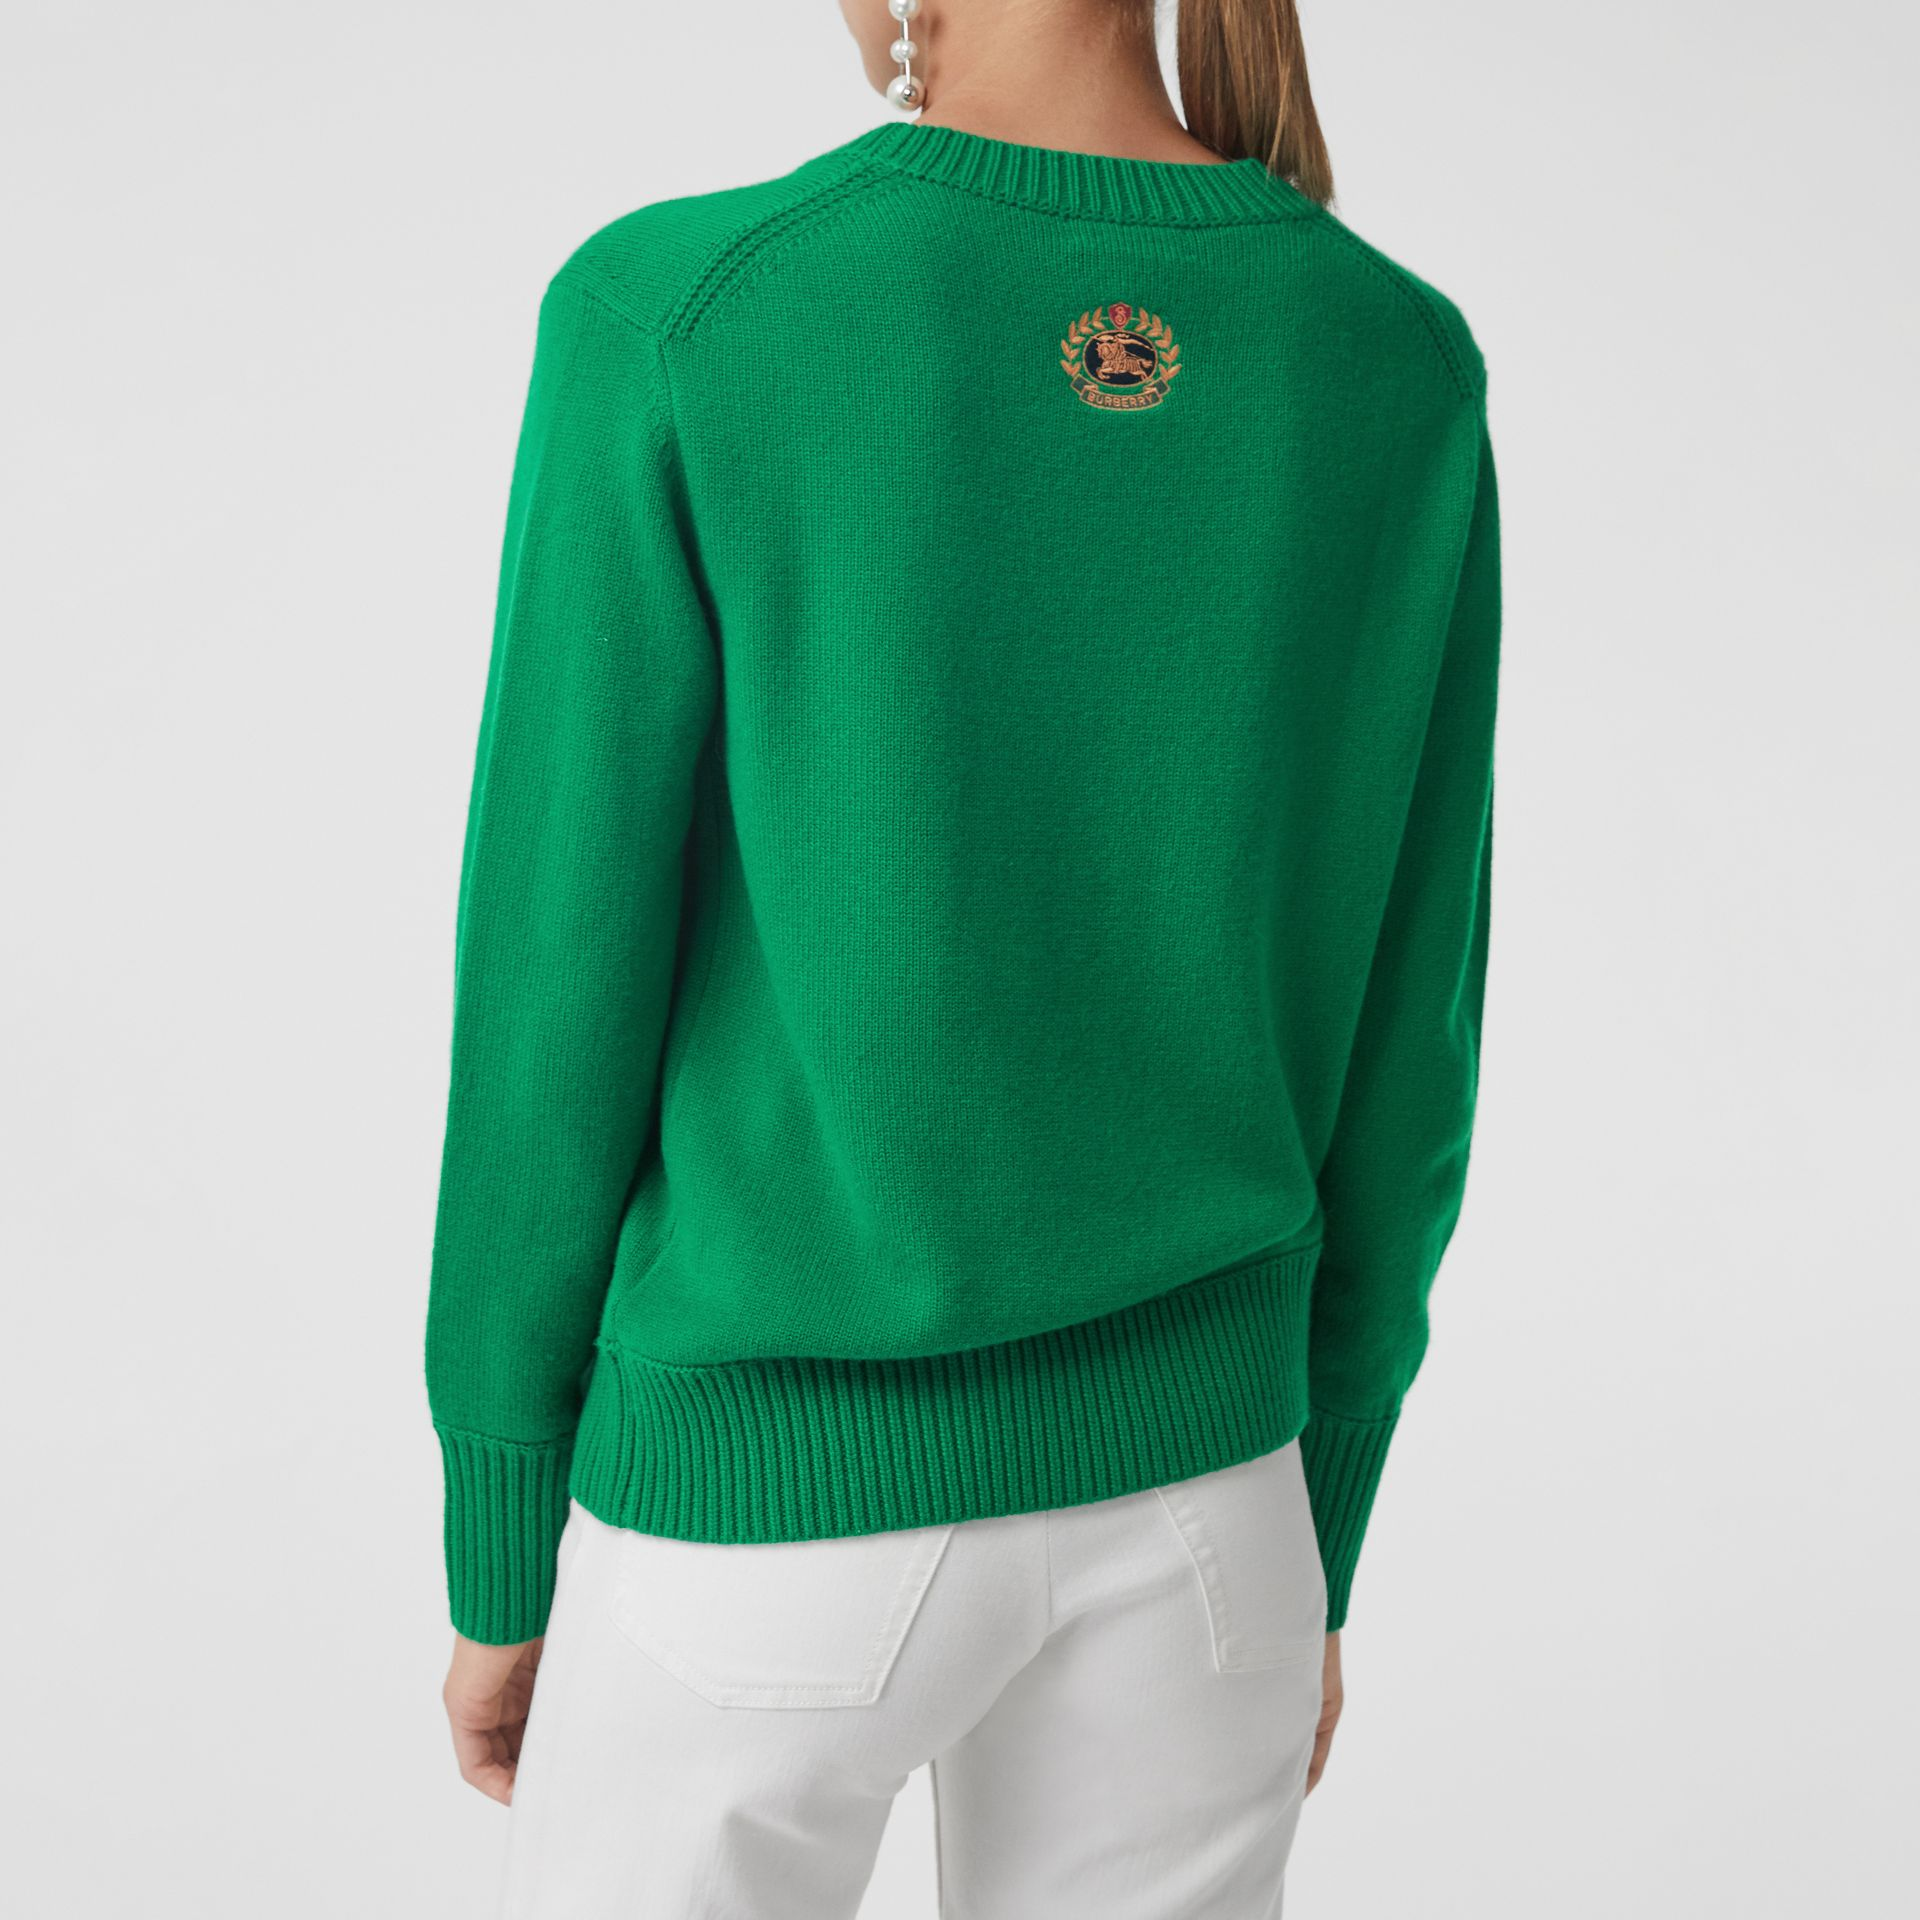 Archive Logo Appliqué Cashmere Sweater in Vibrant Green - Women | Burberry Singapore - gallery image 2